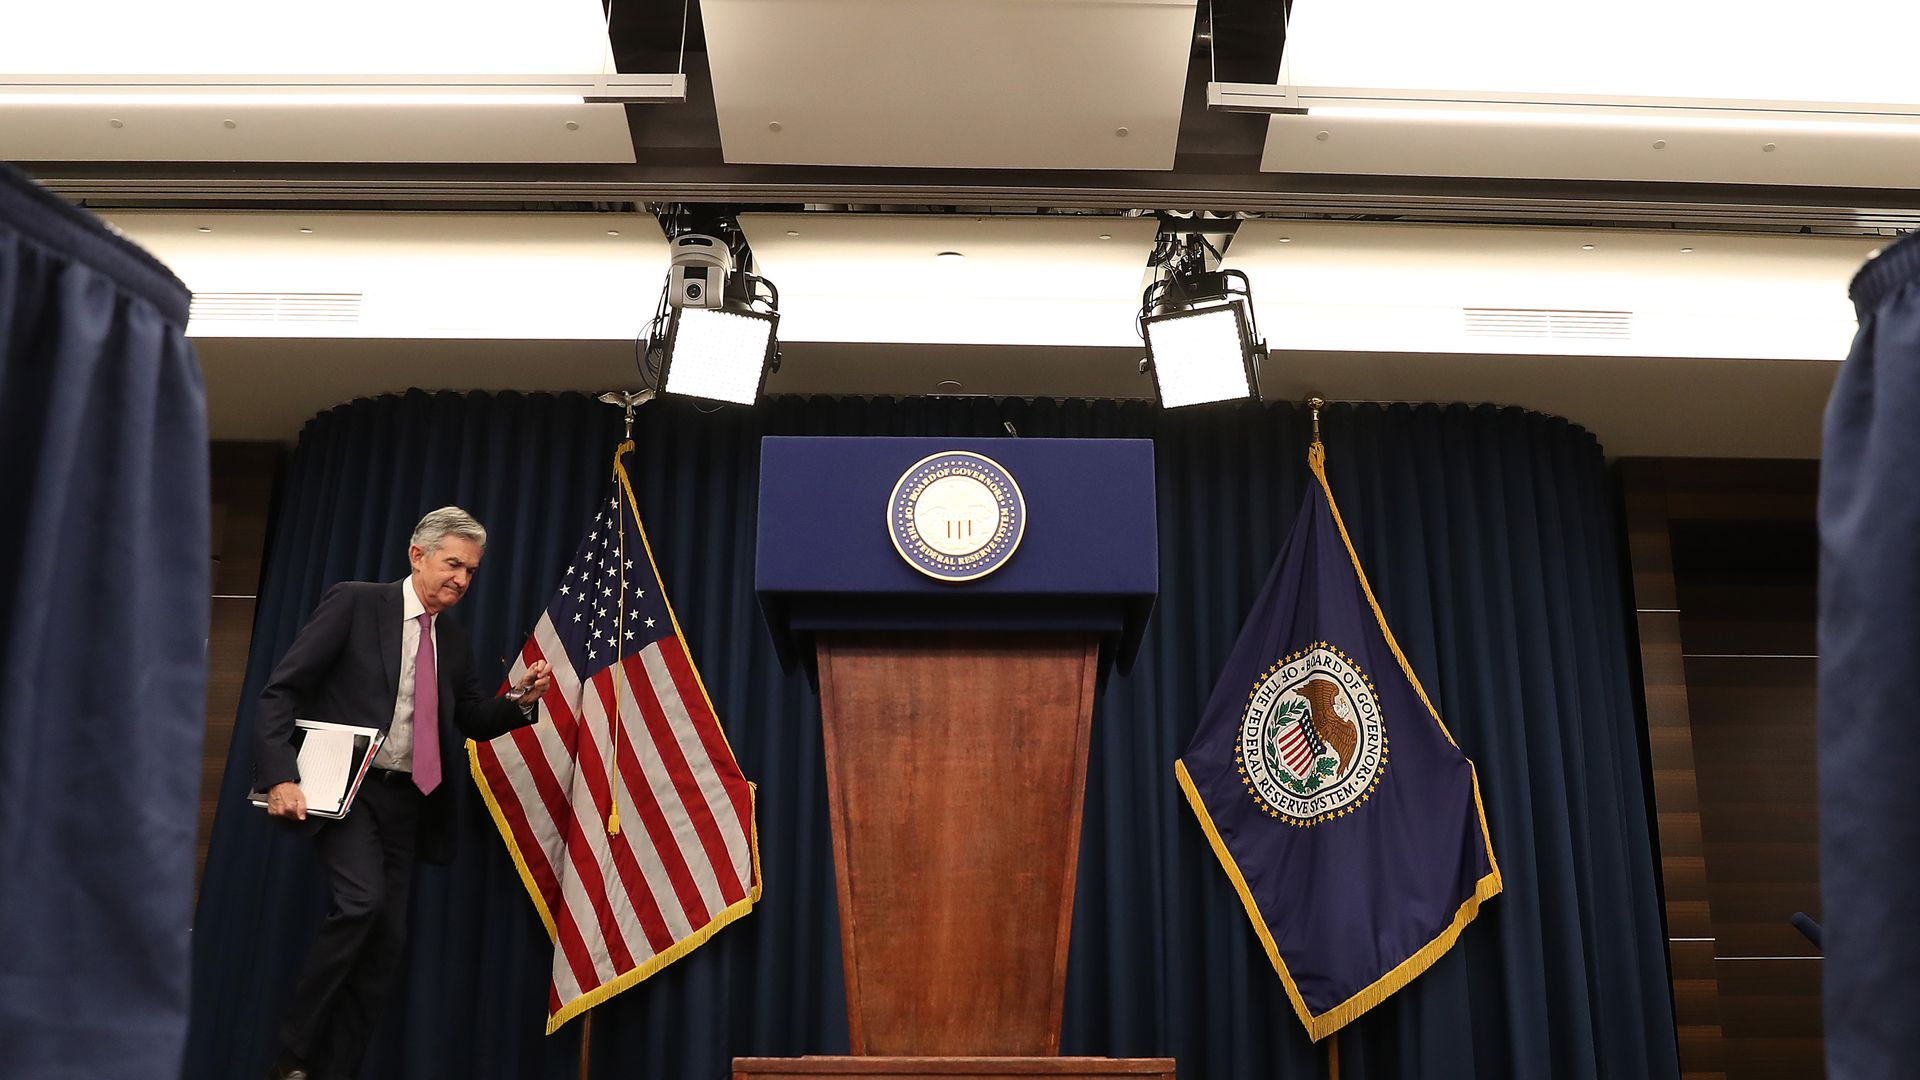 Federal Reserve Board Chairman Jerome Powell walks up to speak during a news conference.